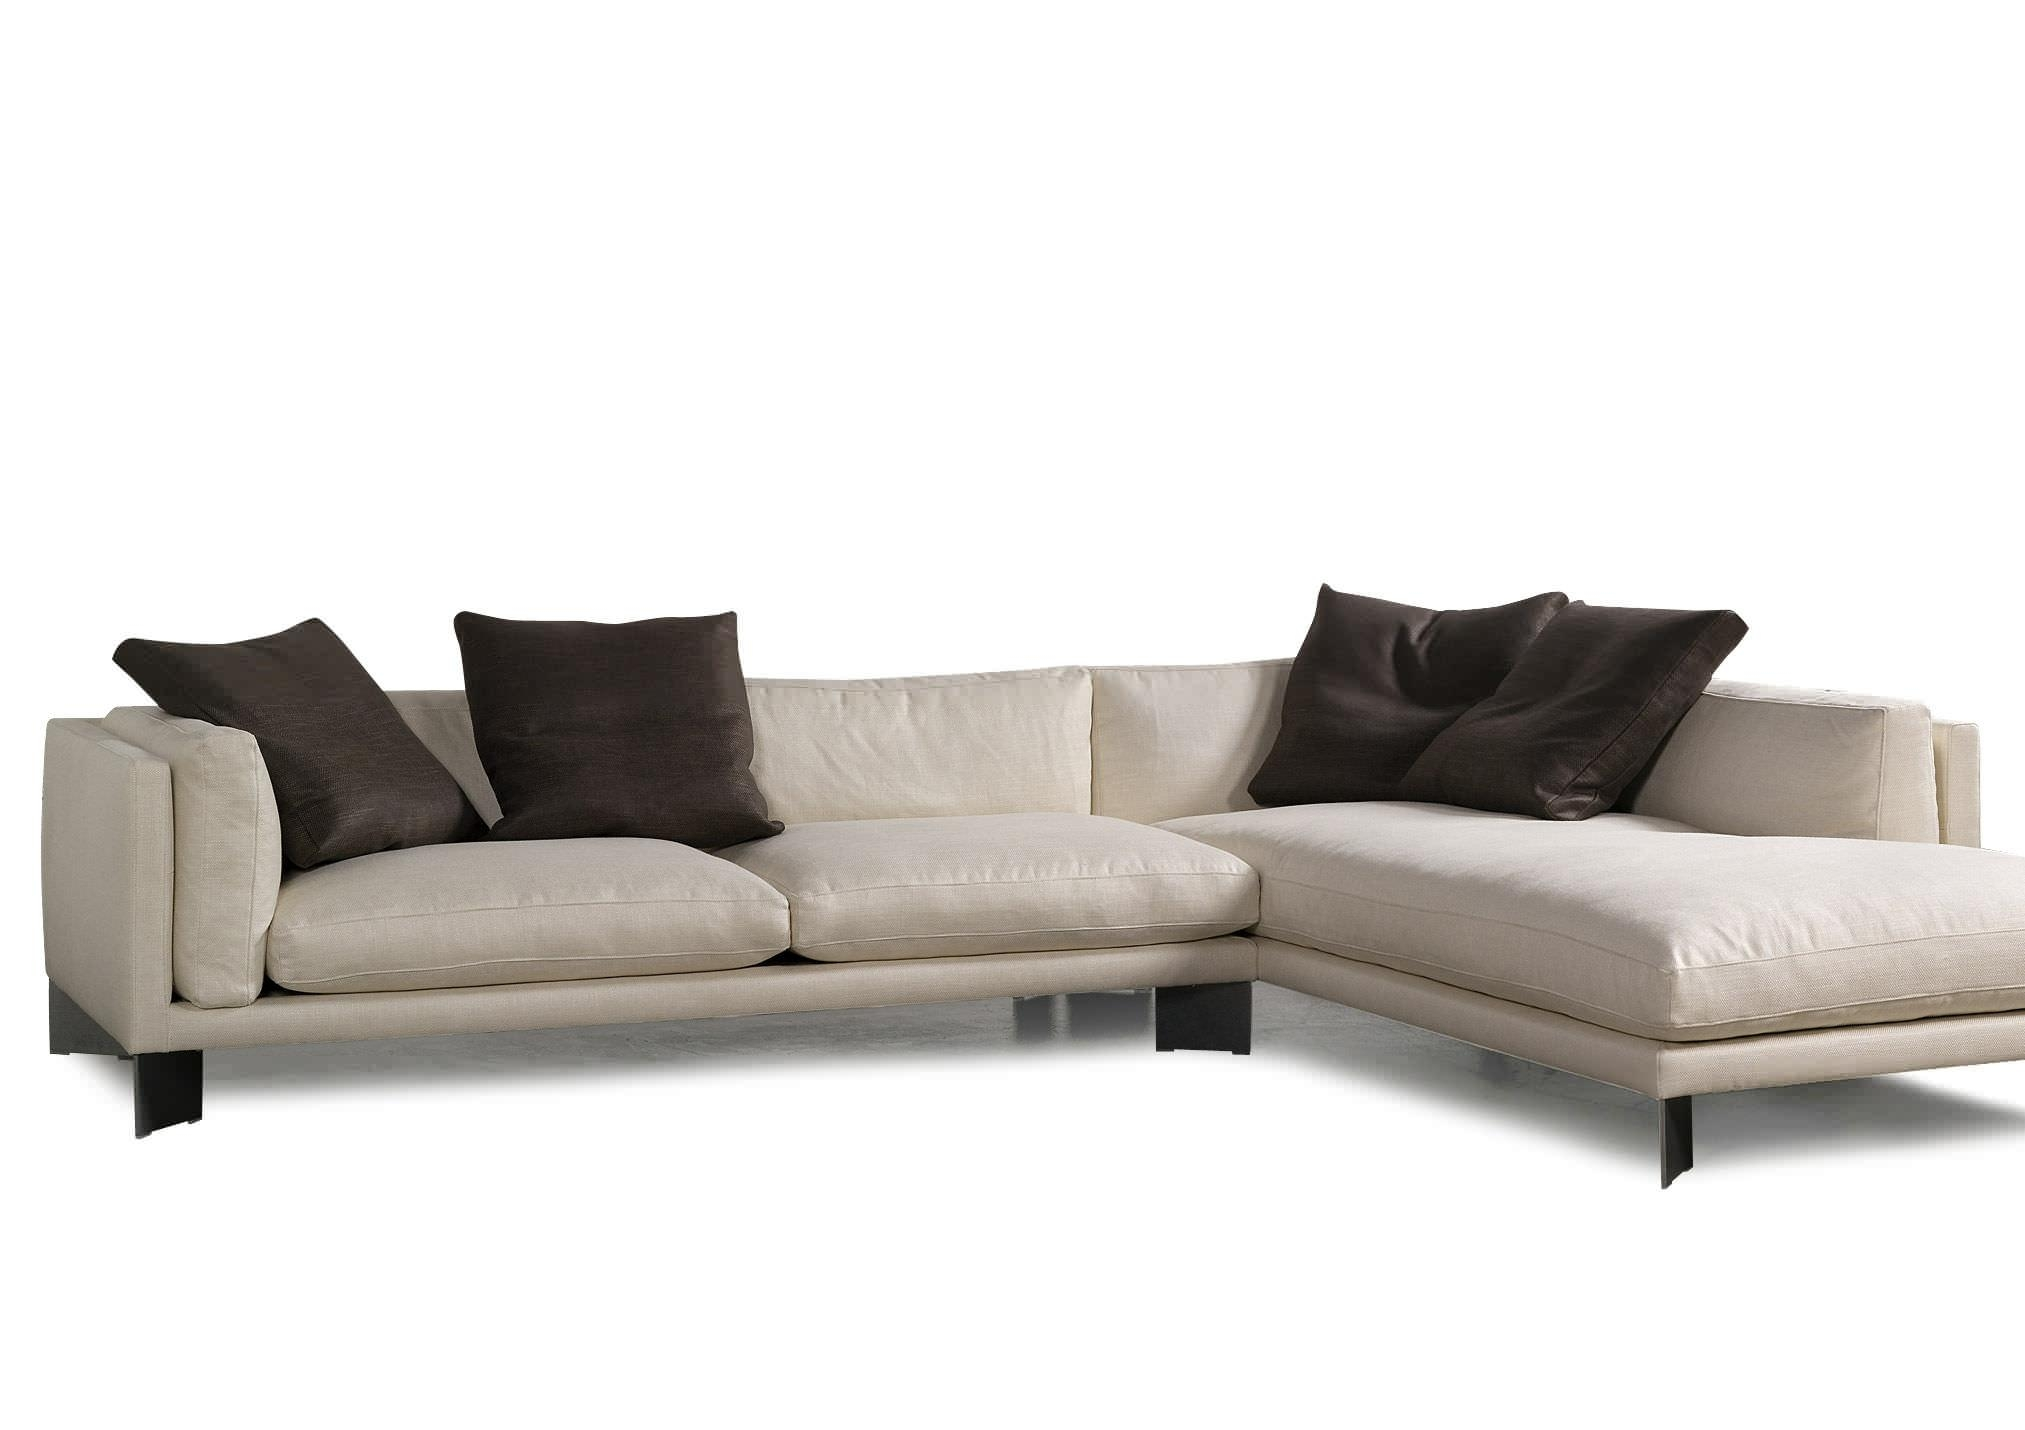 10 Cool Goose Down Sectional Sofa Snapshot Ideas : Lawsh Pertaining To Goose Down Sectional Sofa (Image 1 of 15)